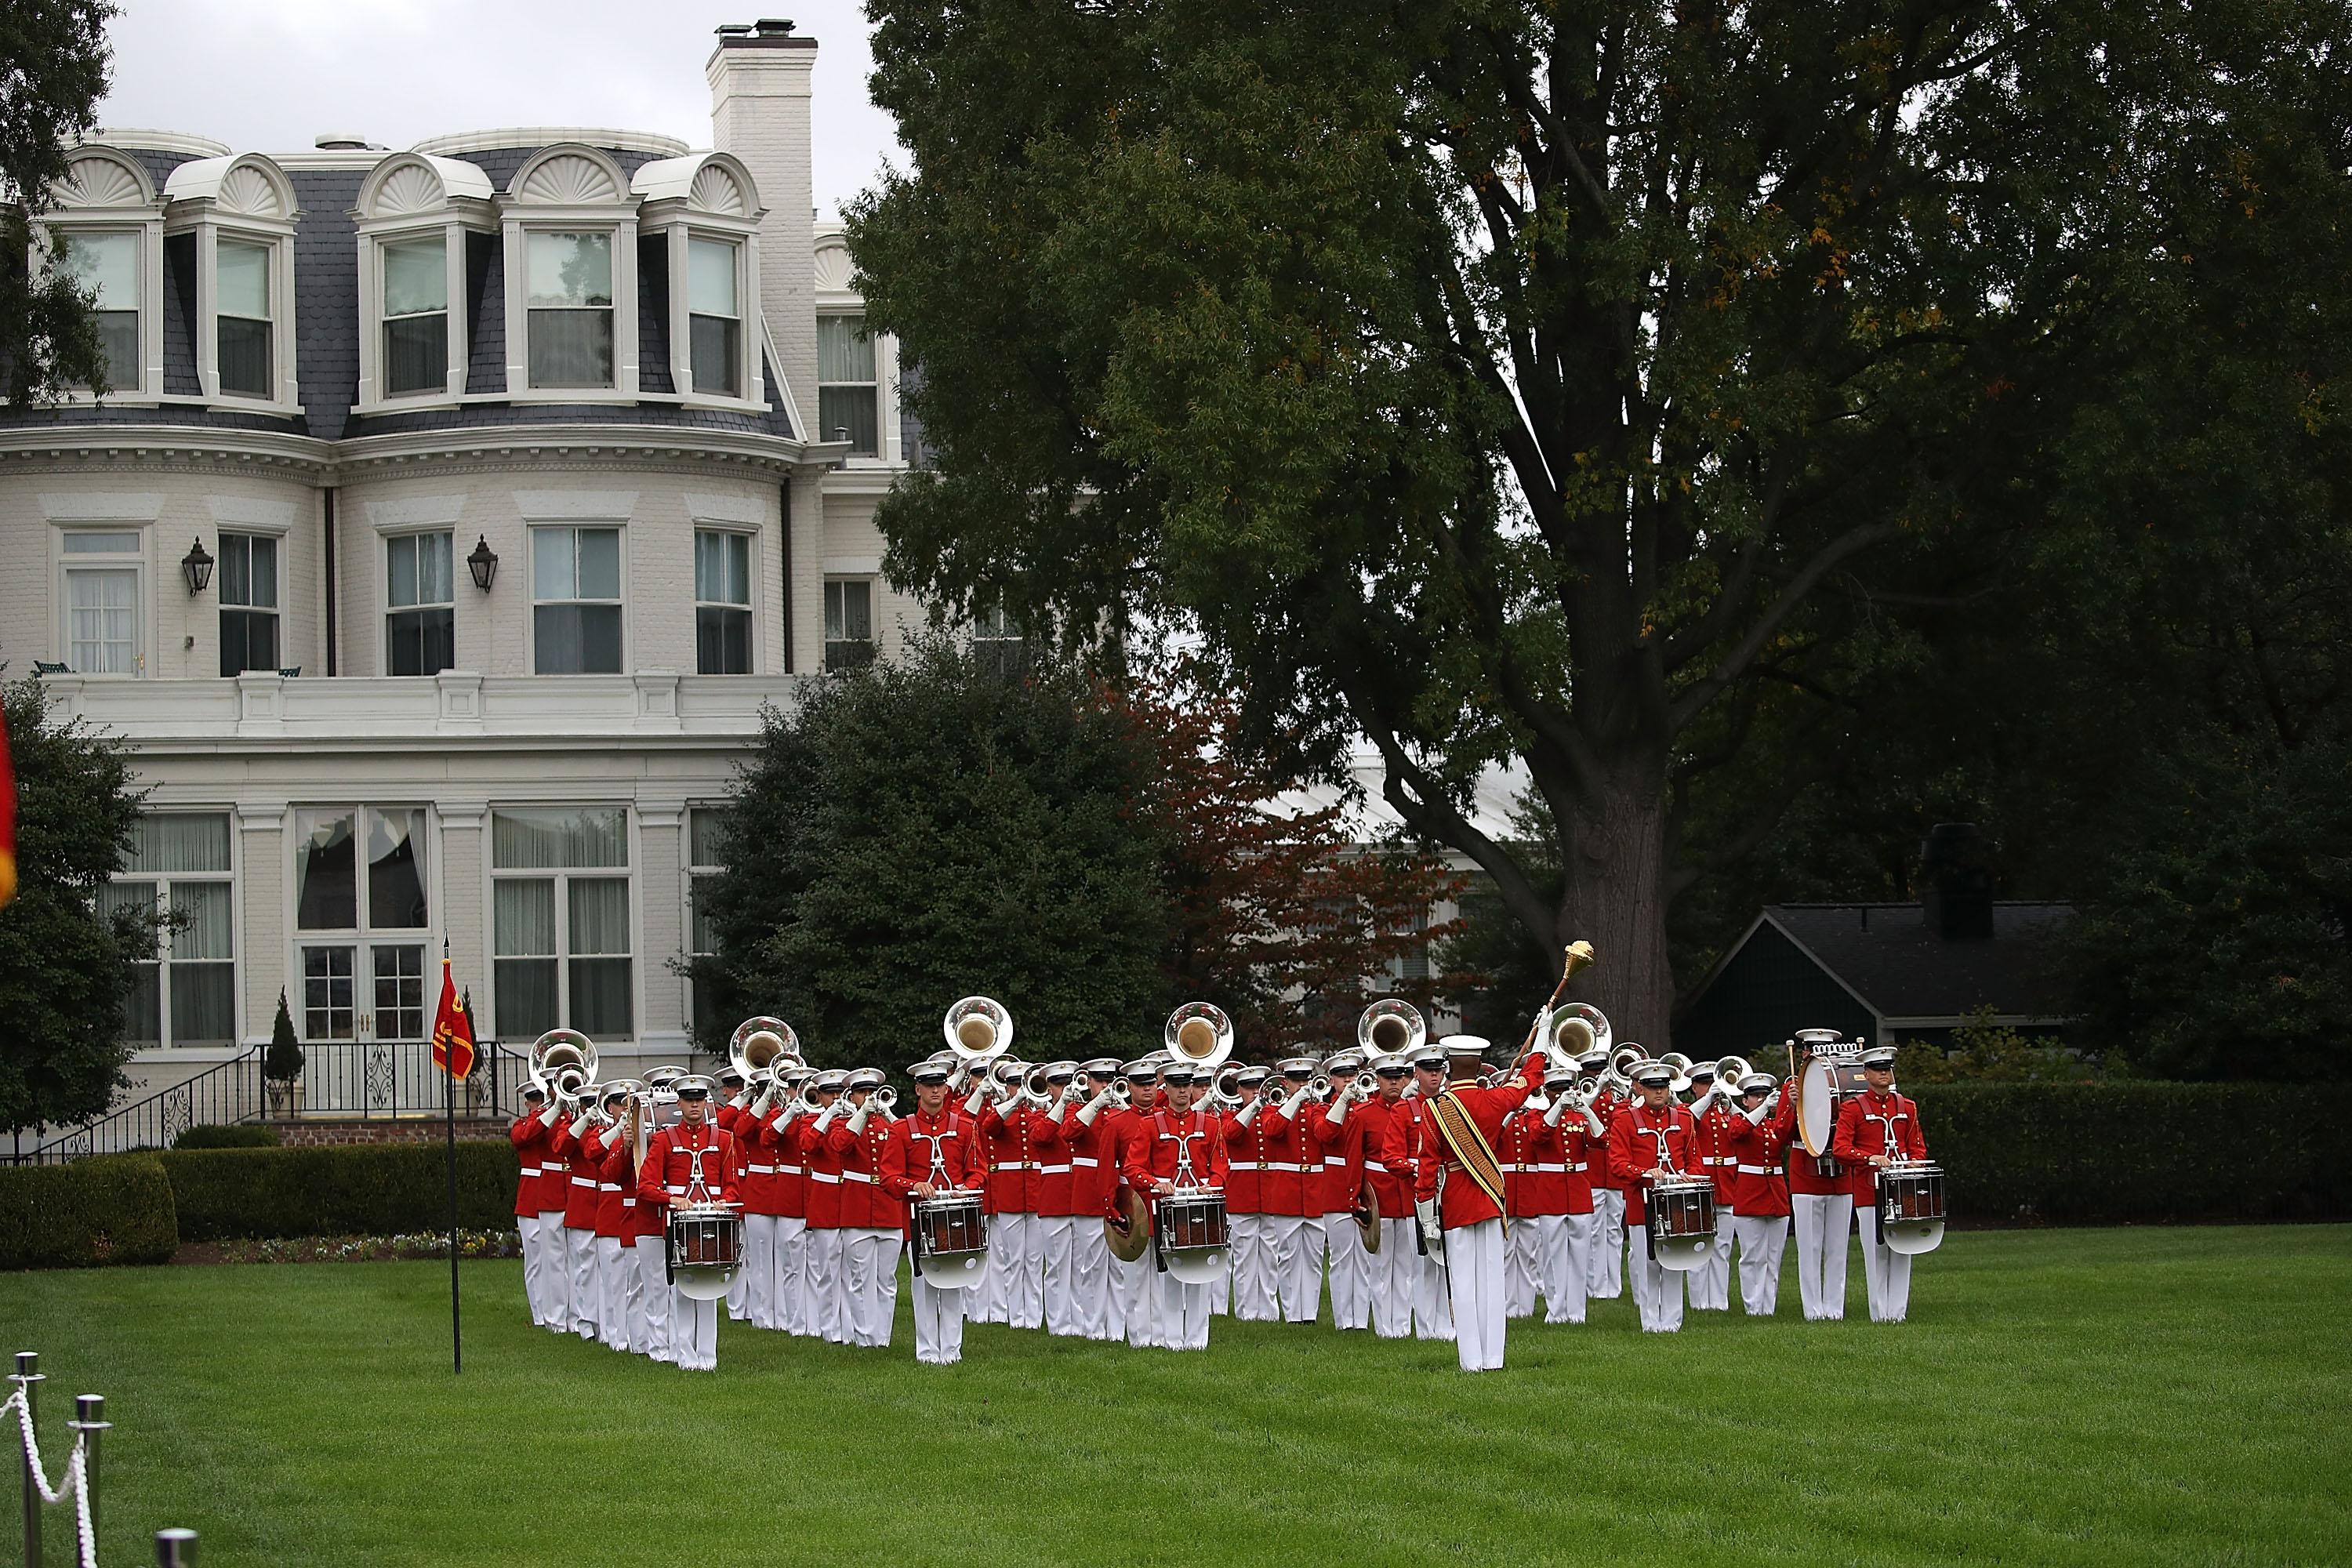 WASHINGTON, DC - OCTOBER 23: The US Marine Drum and Bugle Corp. plays during a ceremony to commemorate the anniversary of the 1983 bombing of the Marine barracks in Beirut, Lebanon, at the Marine barracks on October 23, 2017 in Washington, DC. 34 years ago today terrorist detonated two truck bombs at a building that housed US troops, killing 220 Marines, 18 sailors and 3 soldiers. (Photo by Mark Wilson/Getty Images)